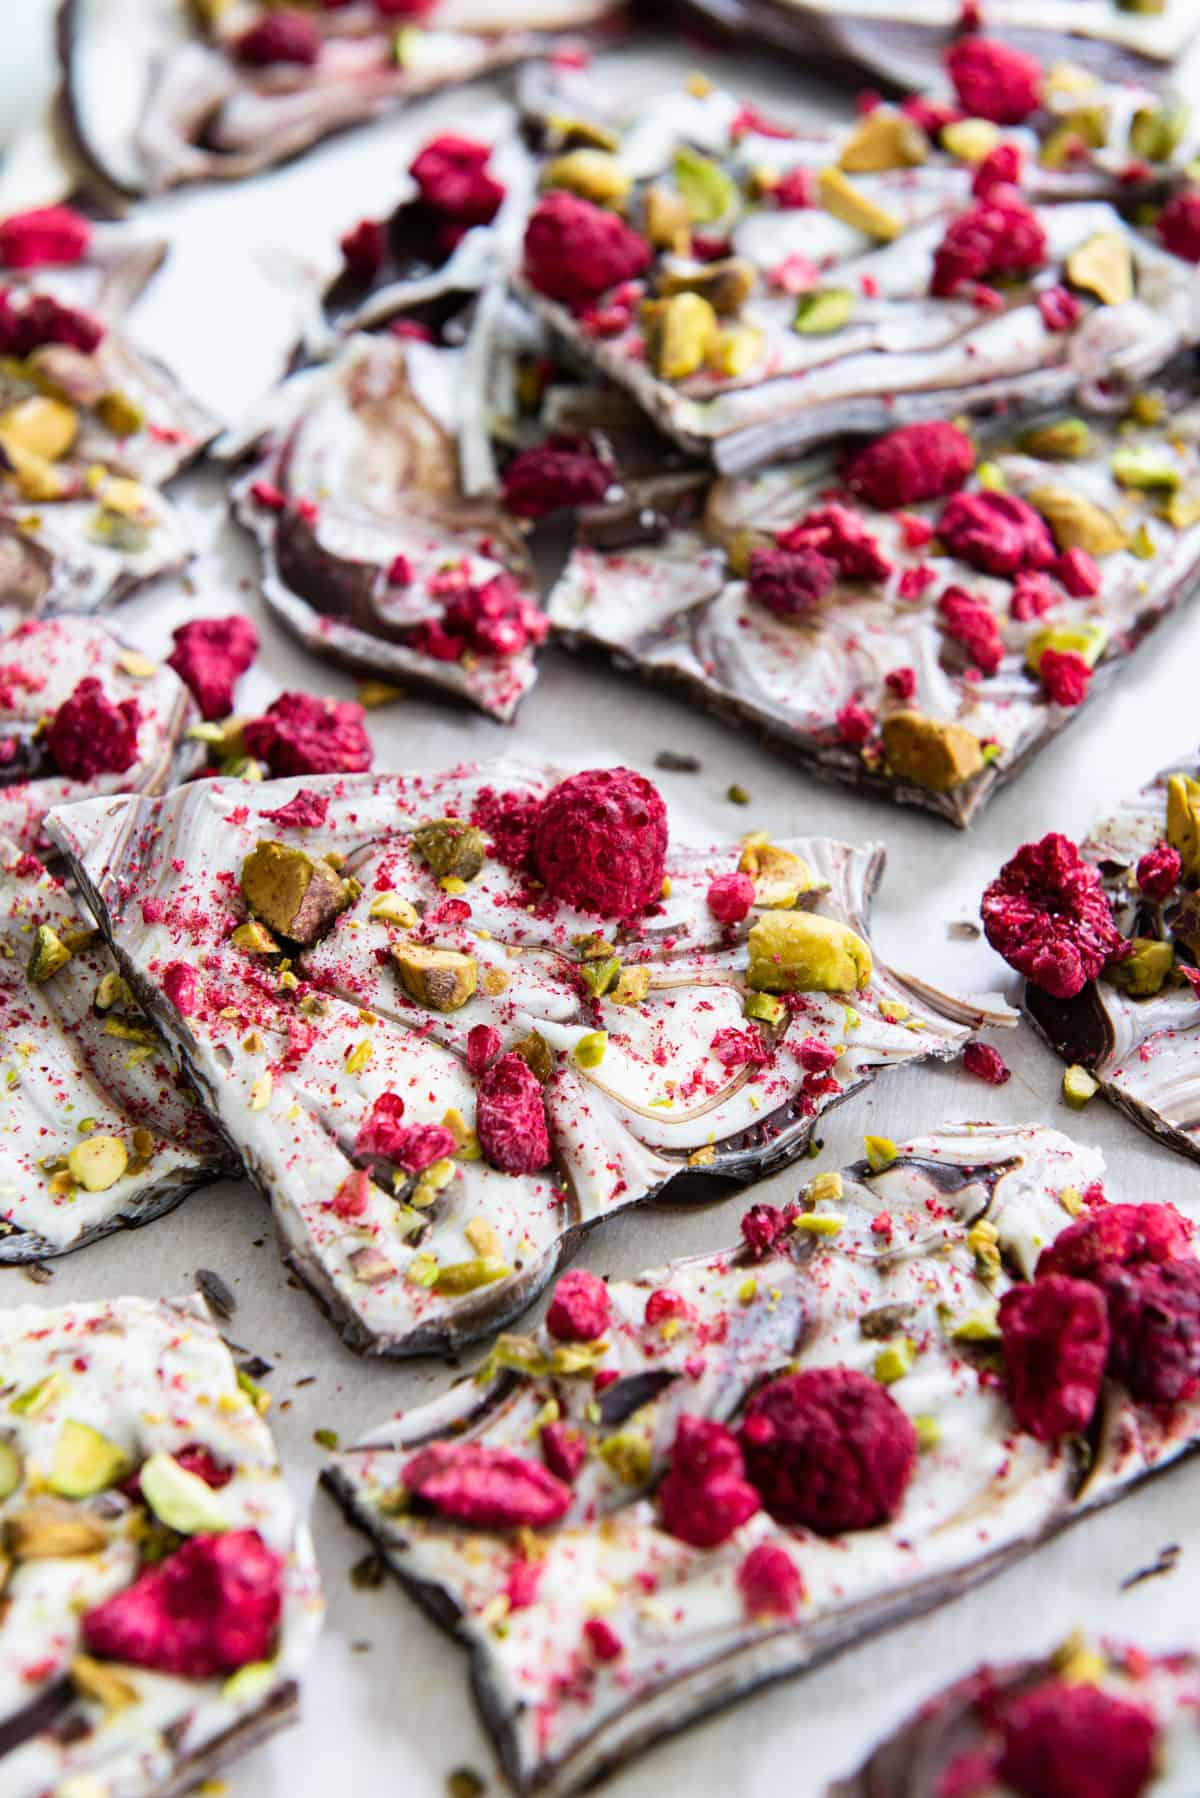 Pieces of Chocolate Bark with Pistachios